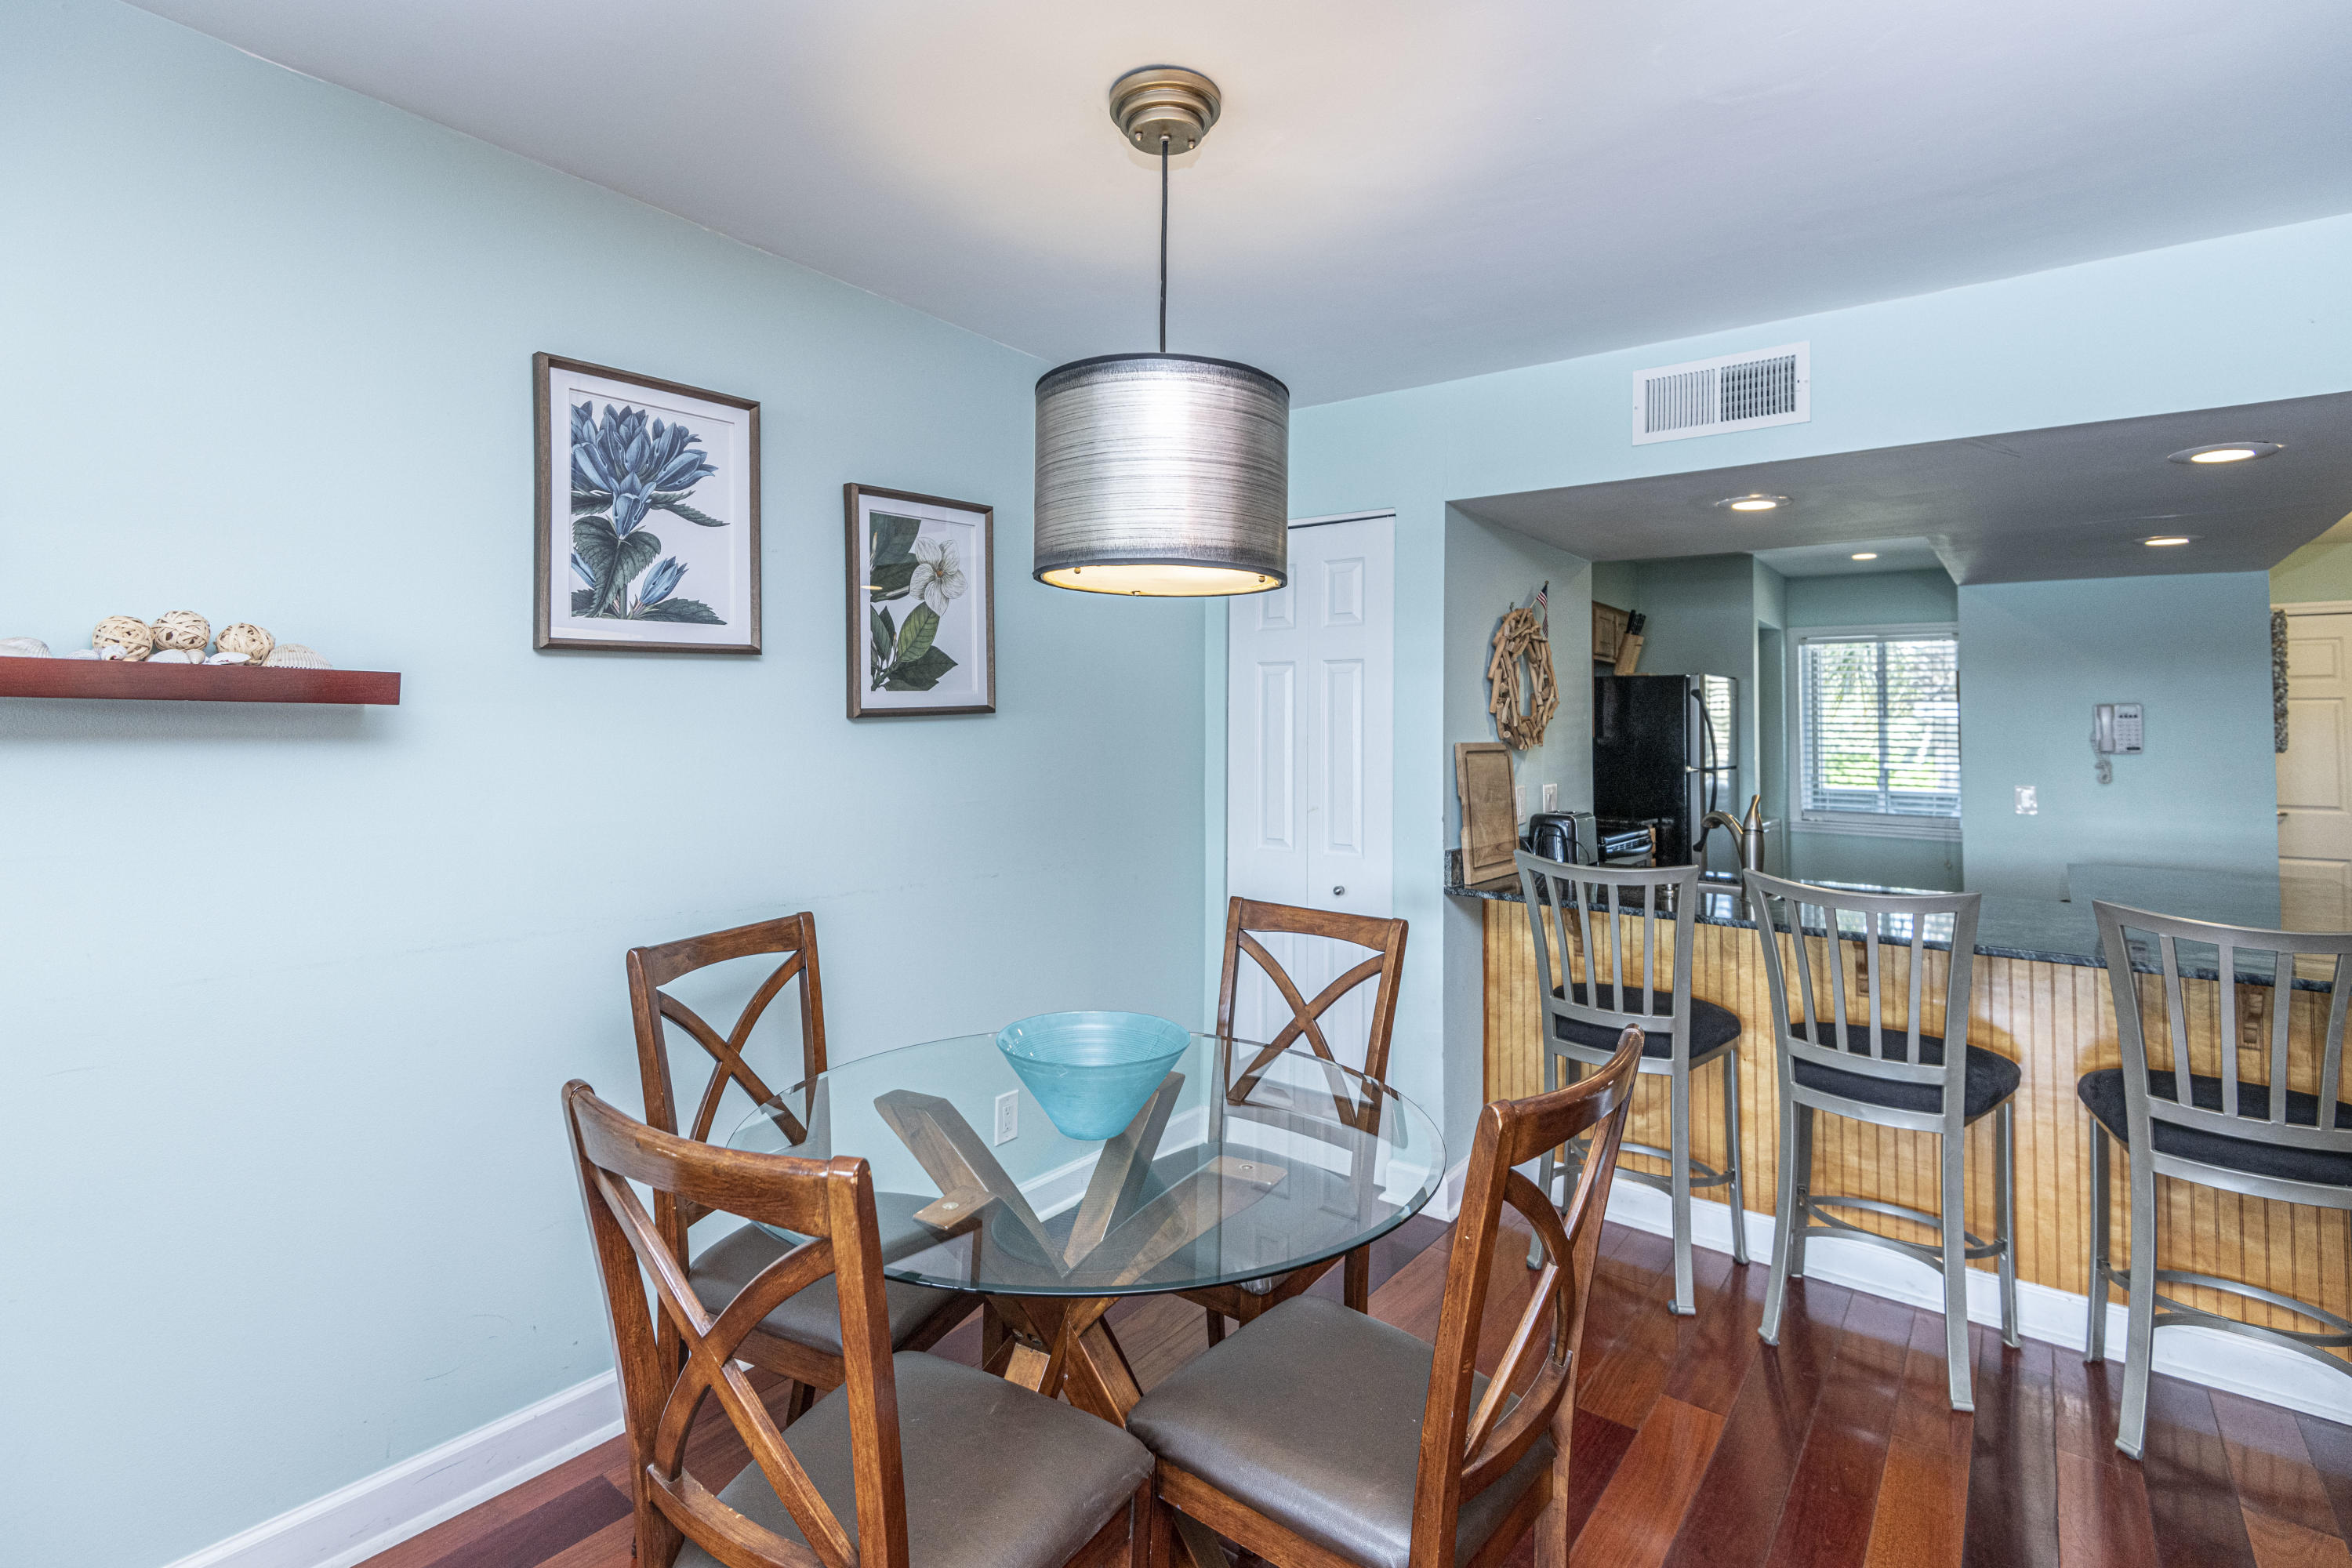 Mariners Cay Homes For Sale - 60 Mariners Cay, Folly Beach, SC - 46